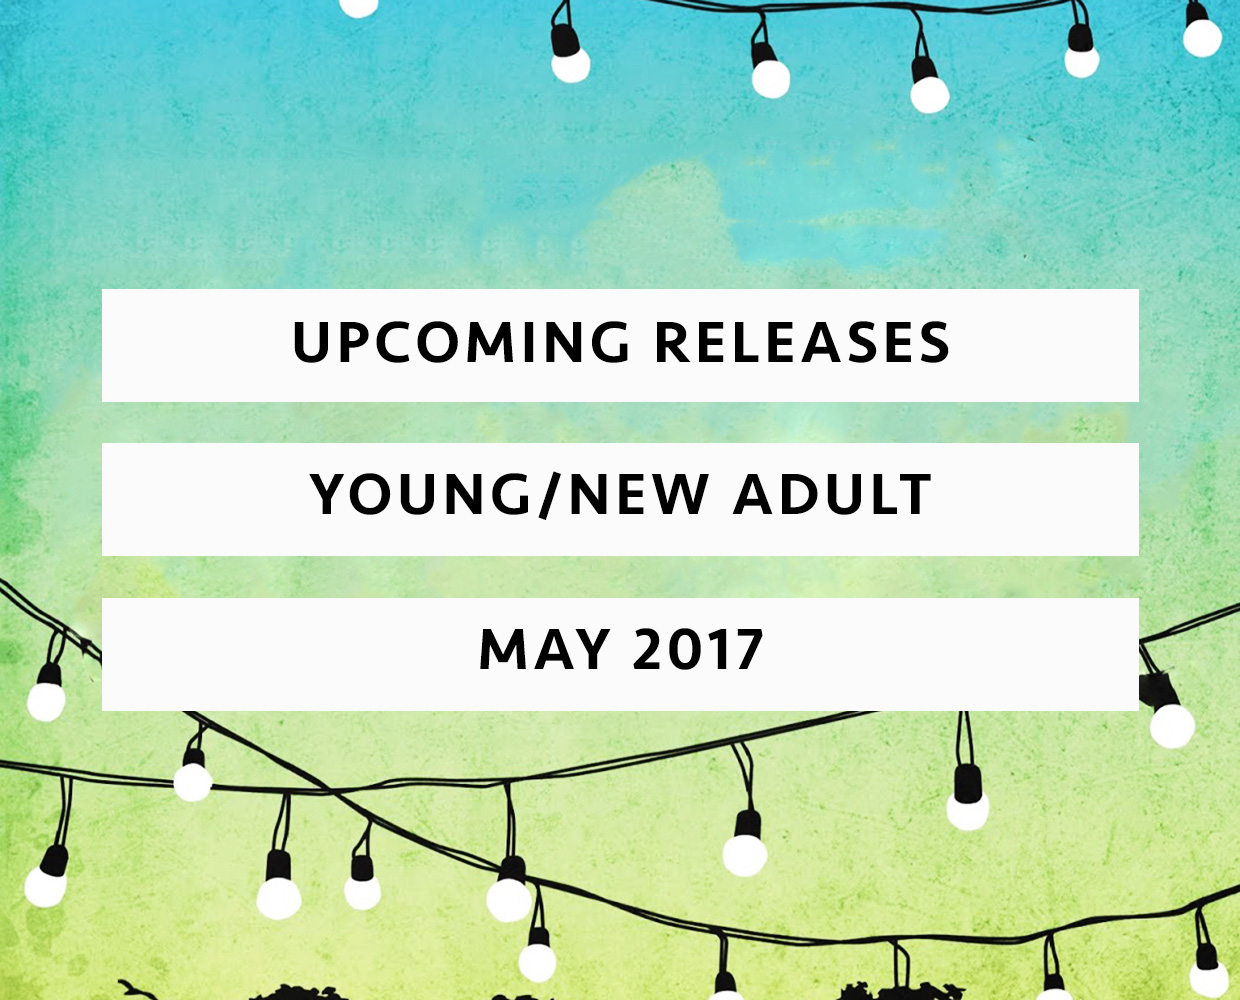 upcoming releases may 2017